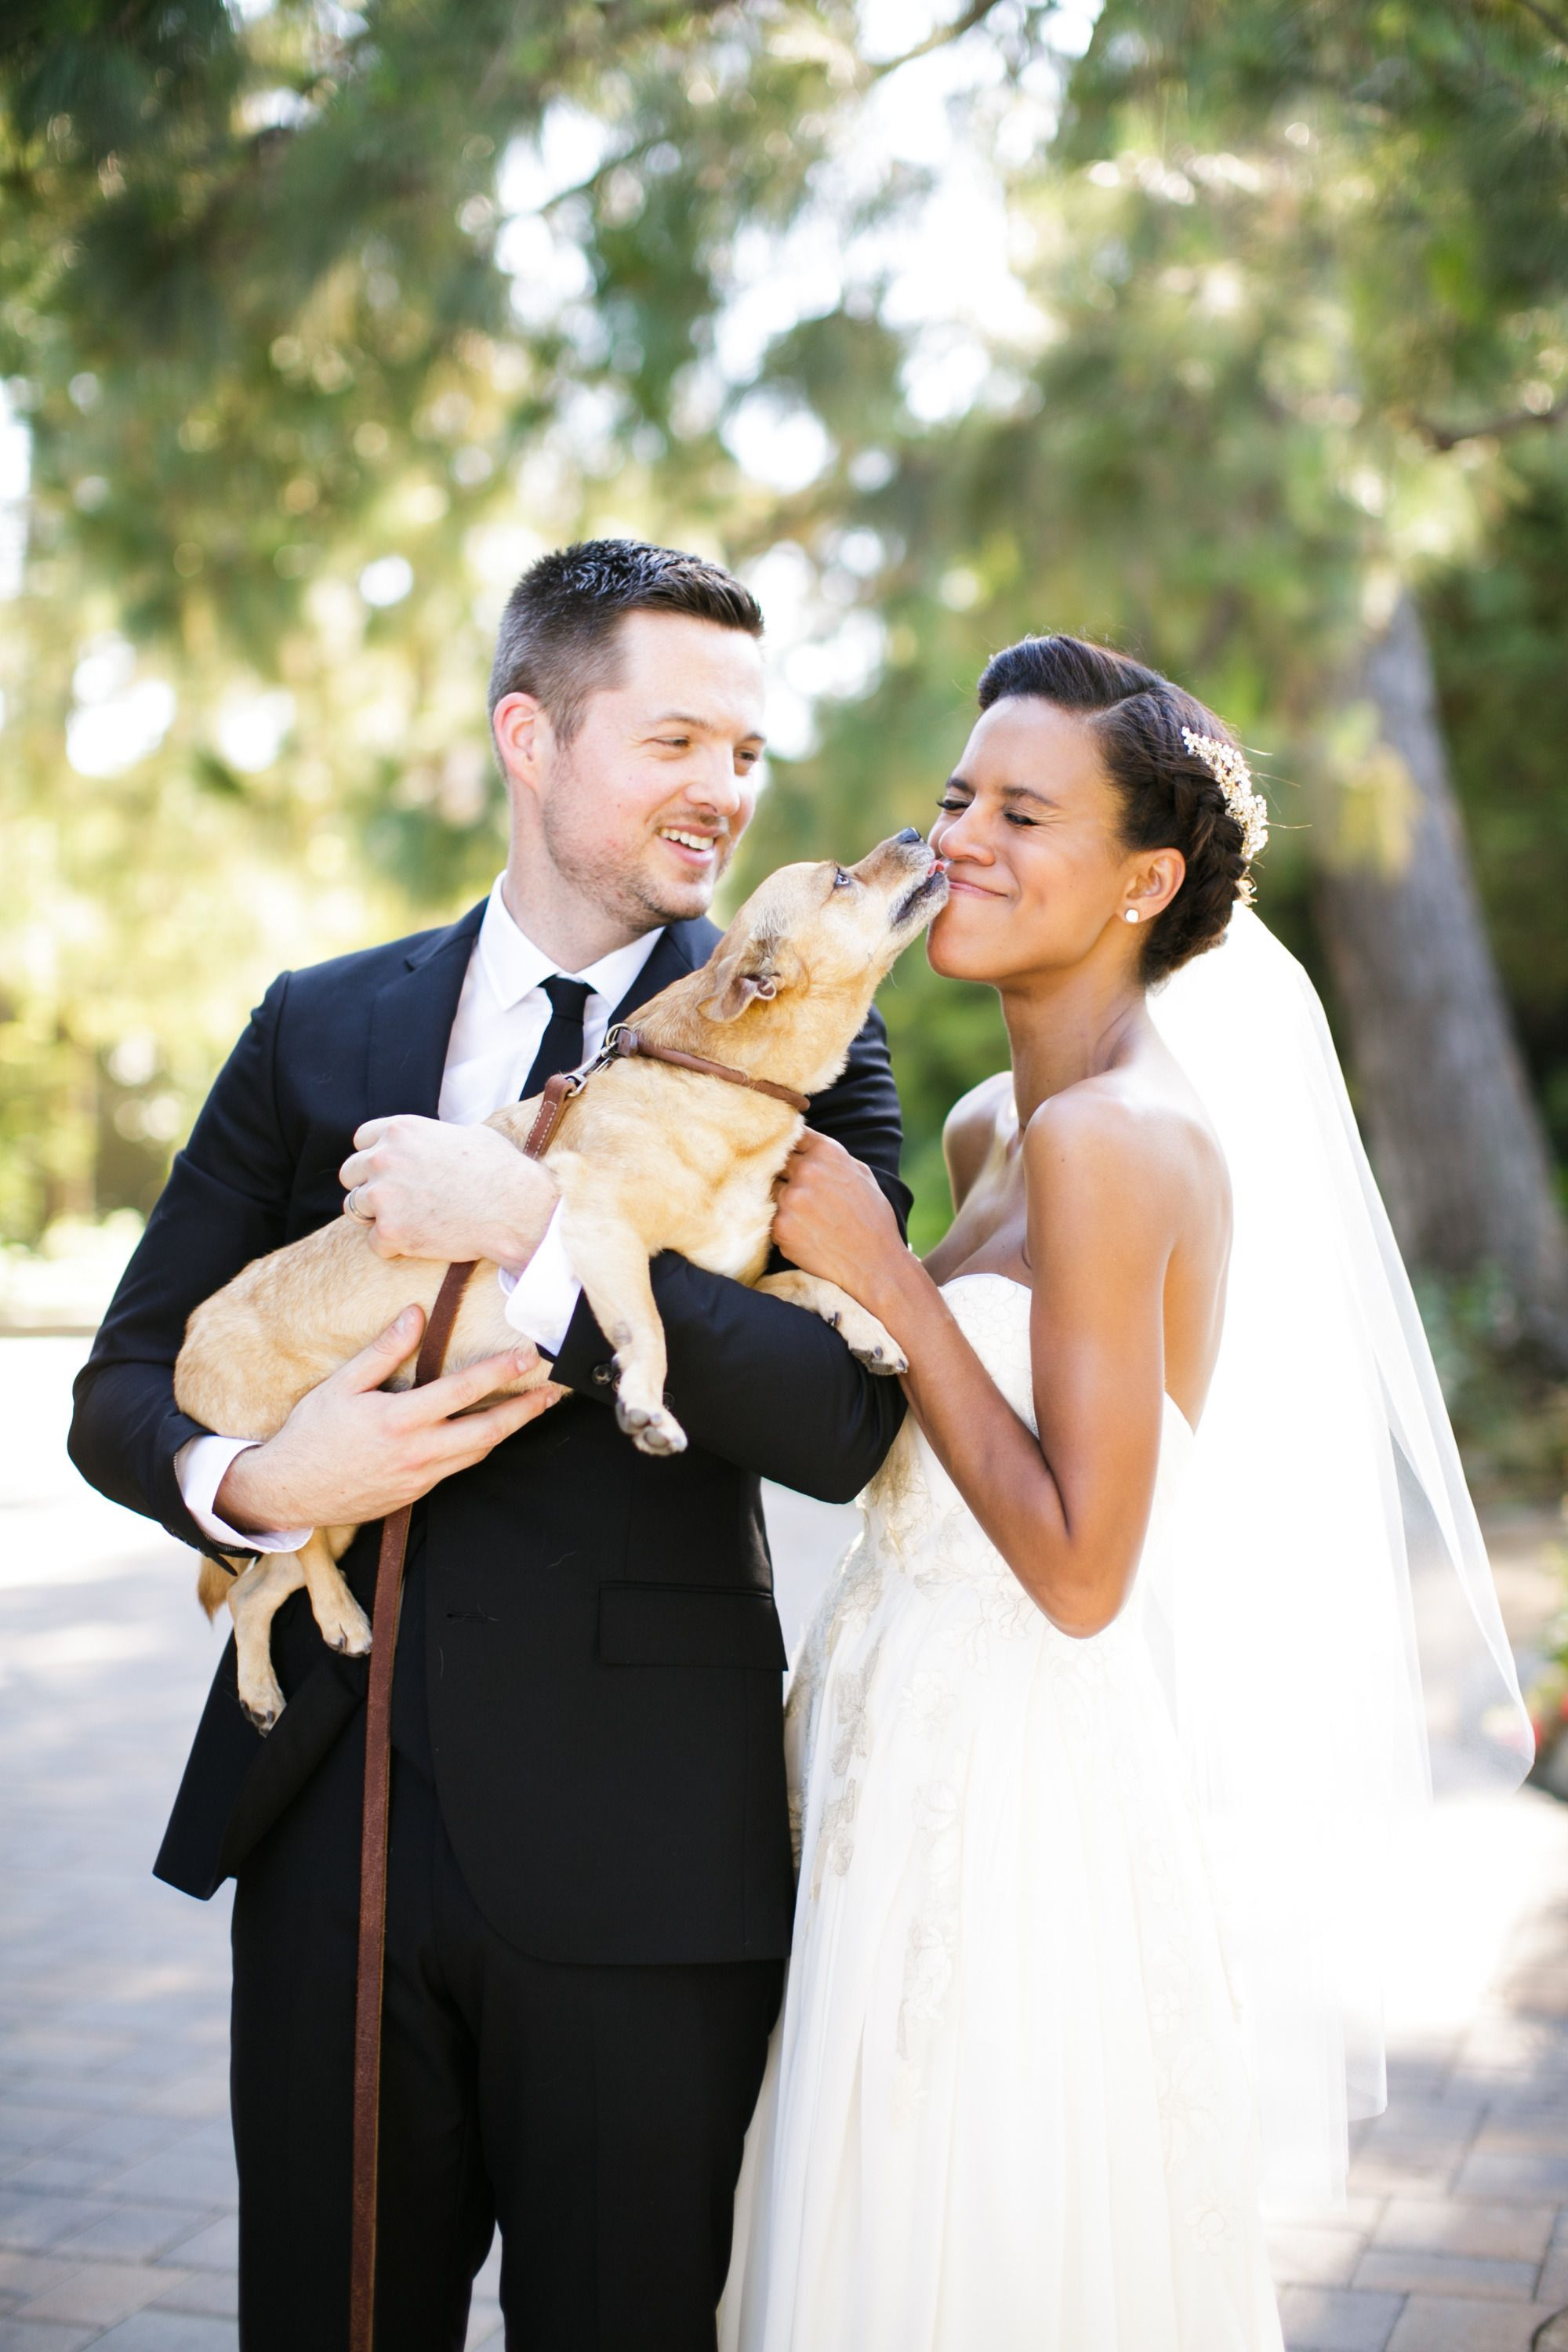 fun family wedding pic photography weddings by sasha gulish read more http